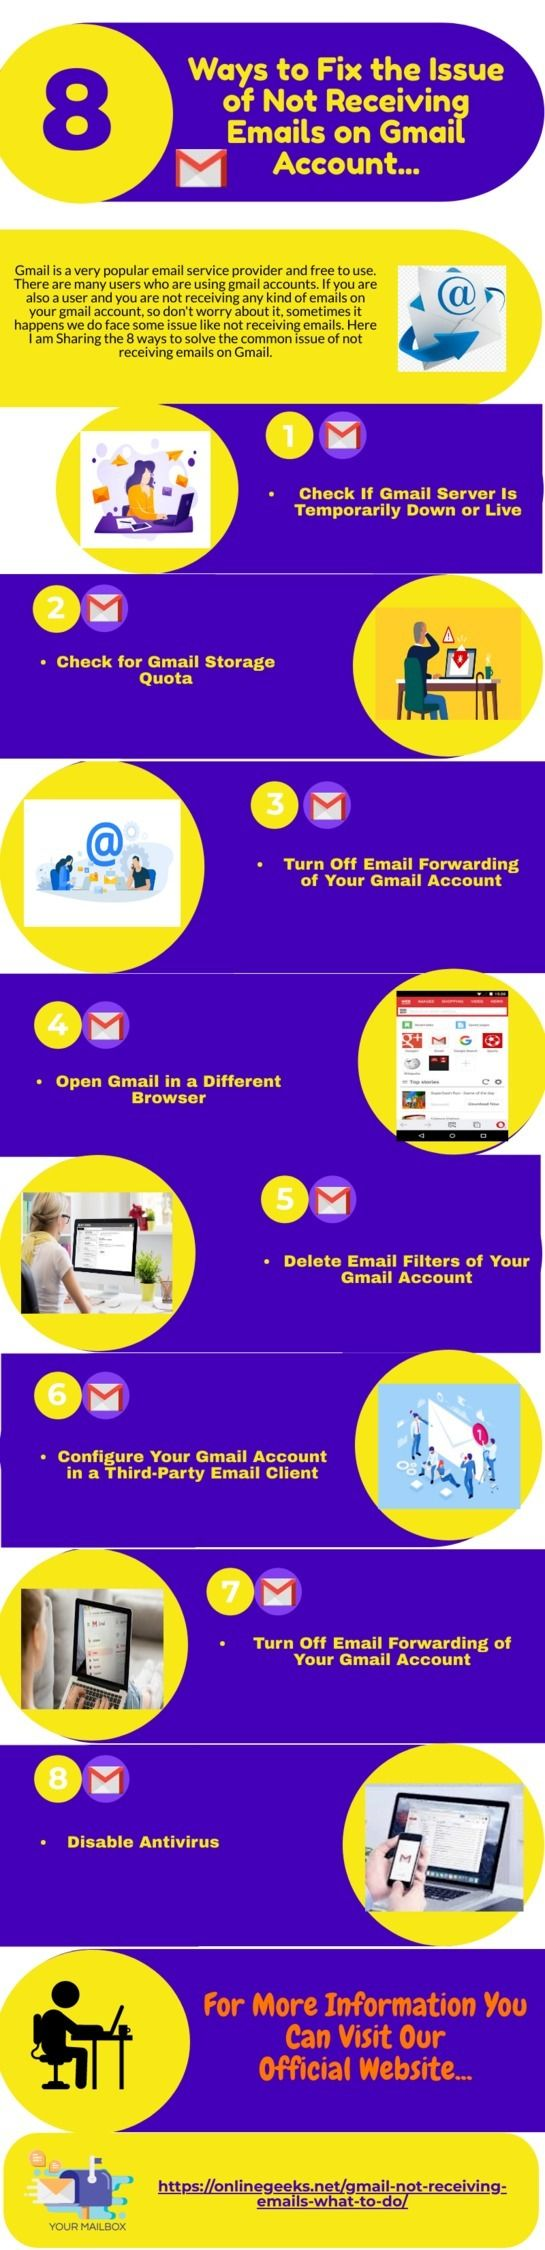 users receive emails Gmail acco - gsusangrey | ello